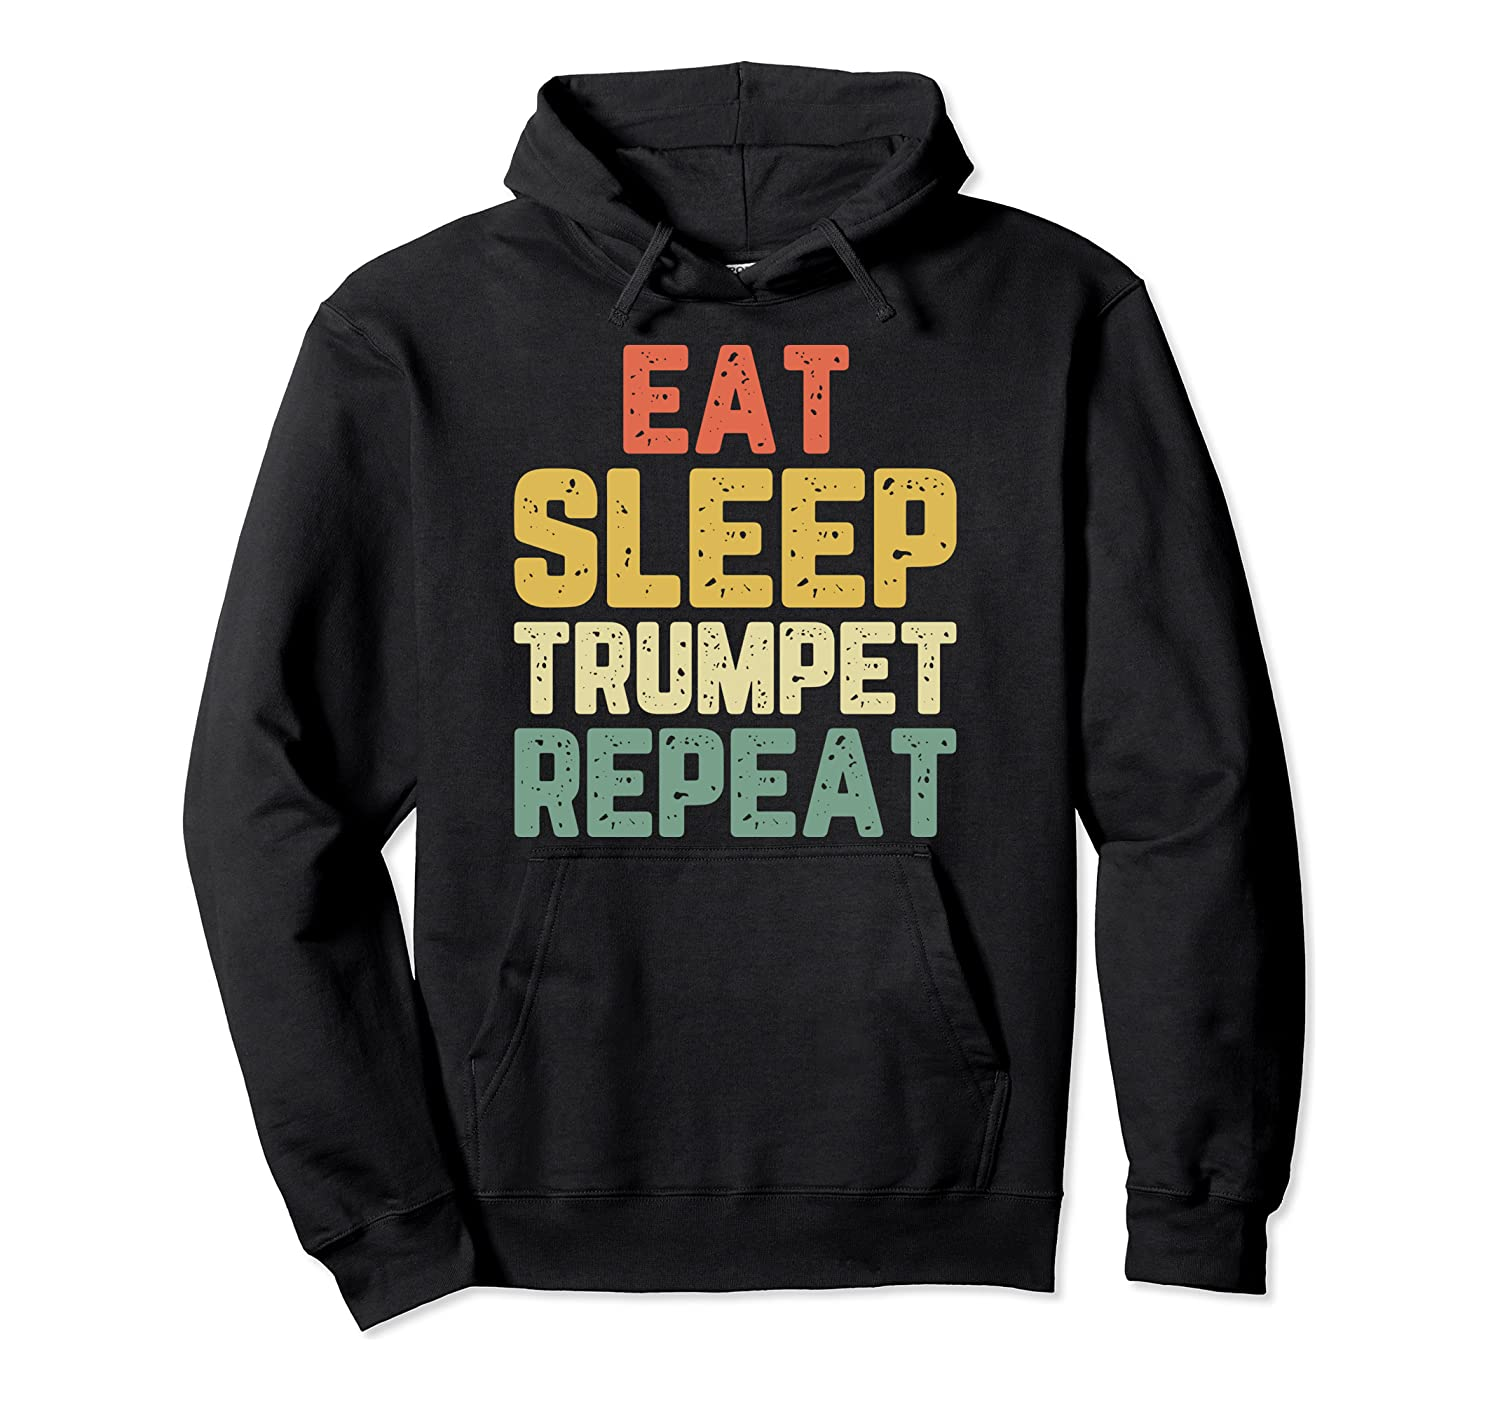 Eat Sleep Trumpet Trumpeter Player Funny Gift Retro Pullover Hoodie